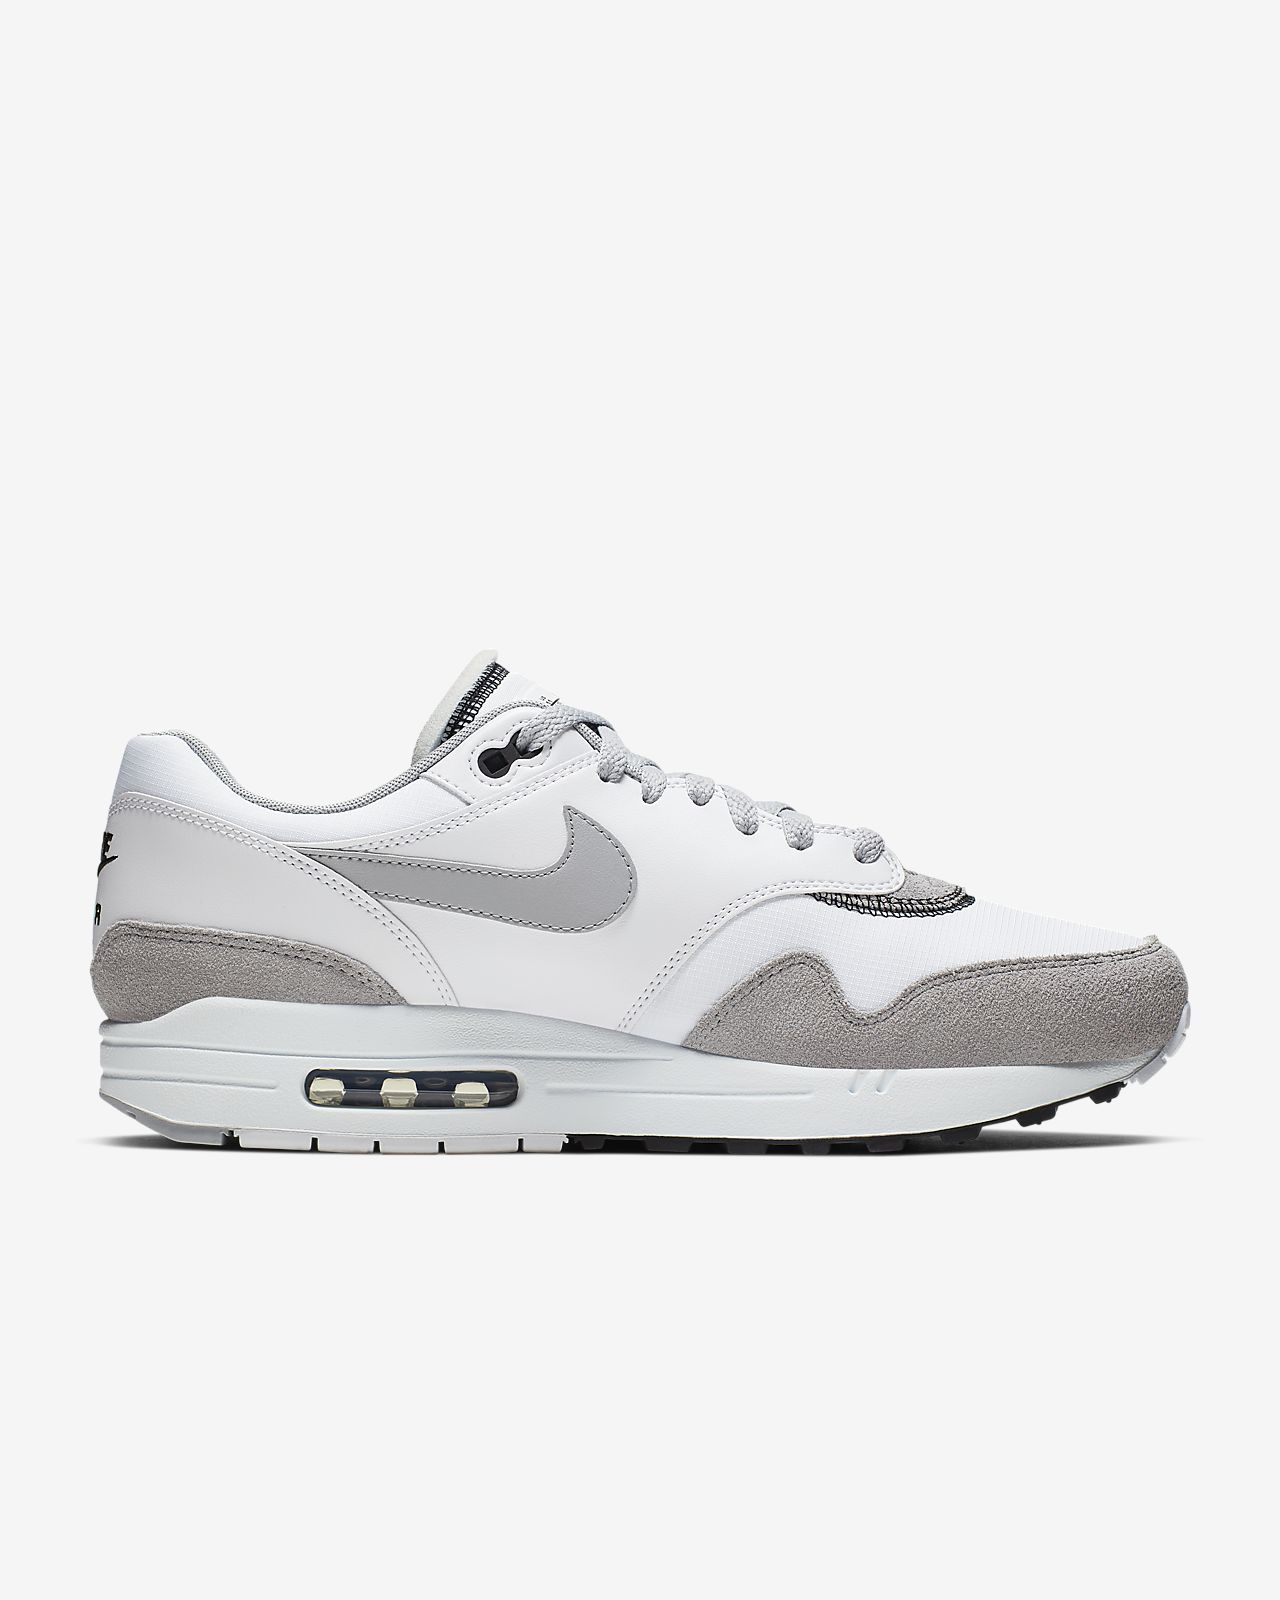 Nike Air Max 1 whitecool greyteam reduniversity red (Herren) (AH8145 100) ab € 102,16